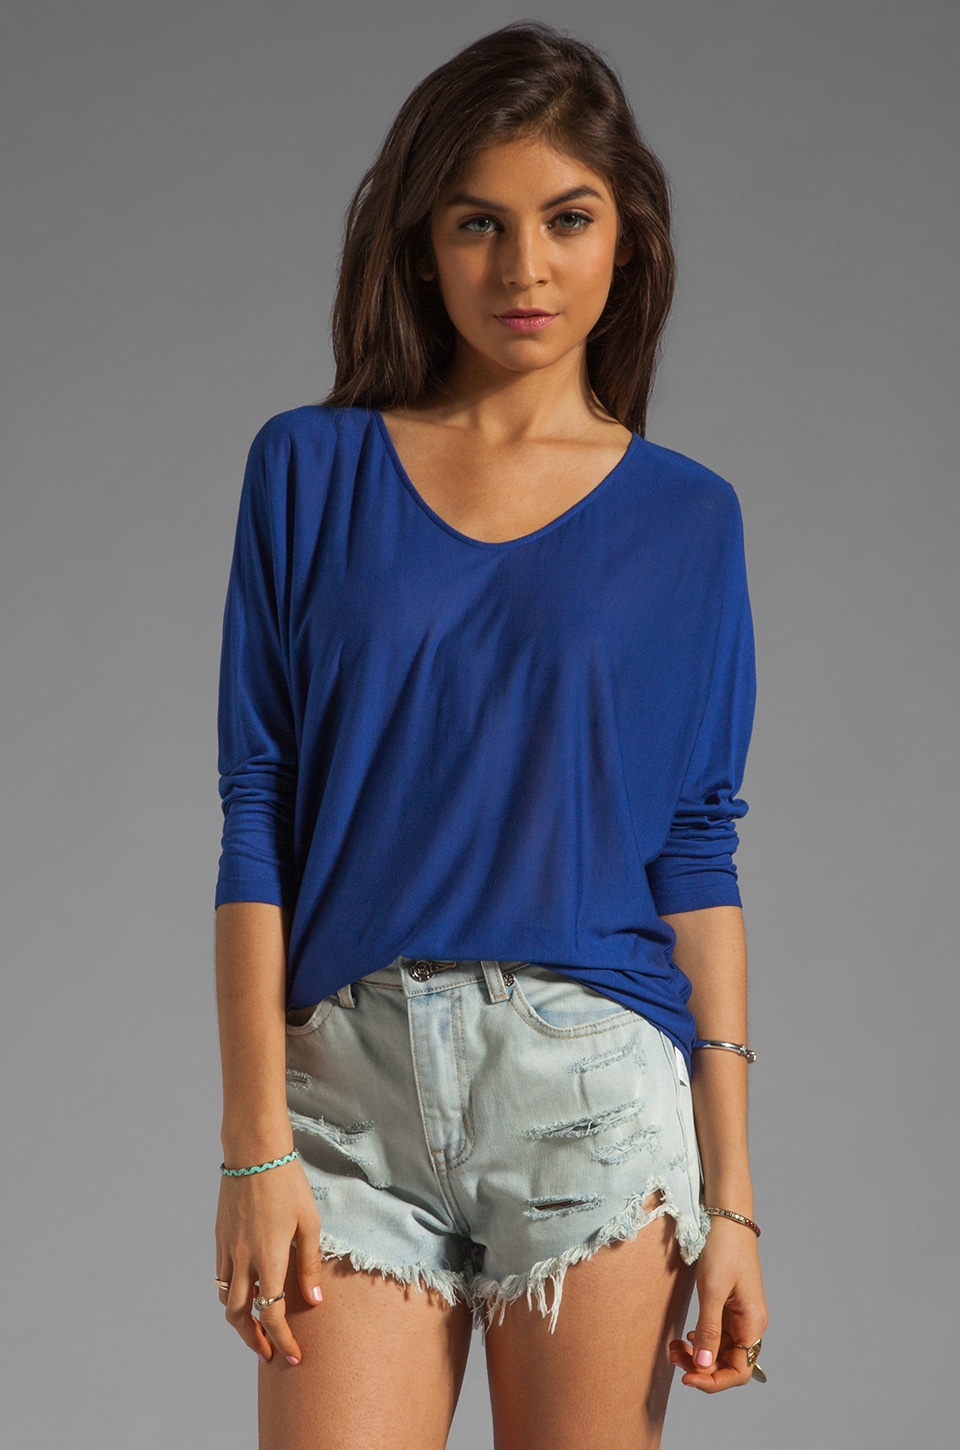 Vince Tees V-neck Top in Ultramarine